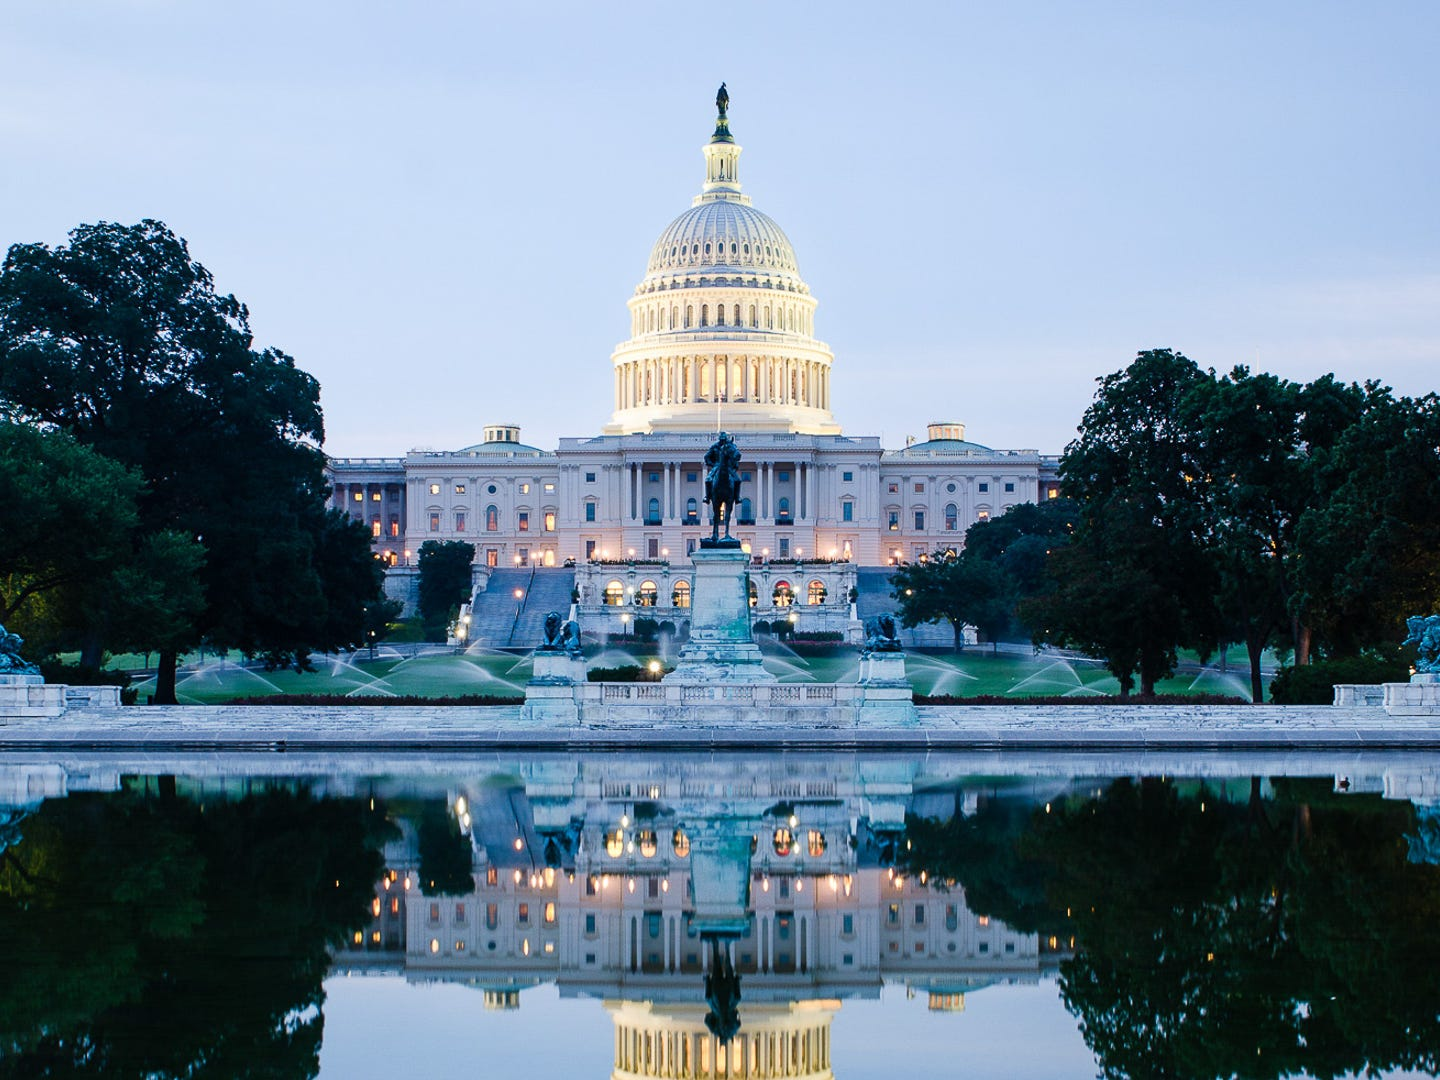 No. 4: Washington, D.C. Thanksgiving trip cost: $826.50. Christmas trip cost: $812. A trip to the nation's capital can be an affordable Thanksgiving or Christmas vacation. During both holidays, hotels in Washington, D.C., are the third-cheapest compared to the other destinations included in this study. While you're there, you can visit holiday markets and see the National Christmas Tree near the White House, the U.S. Capitol Christmas Tree and the National Menorah.